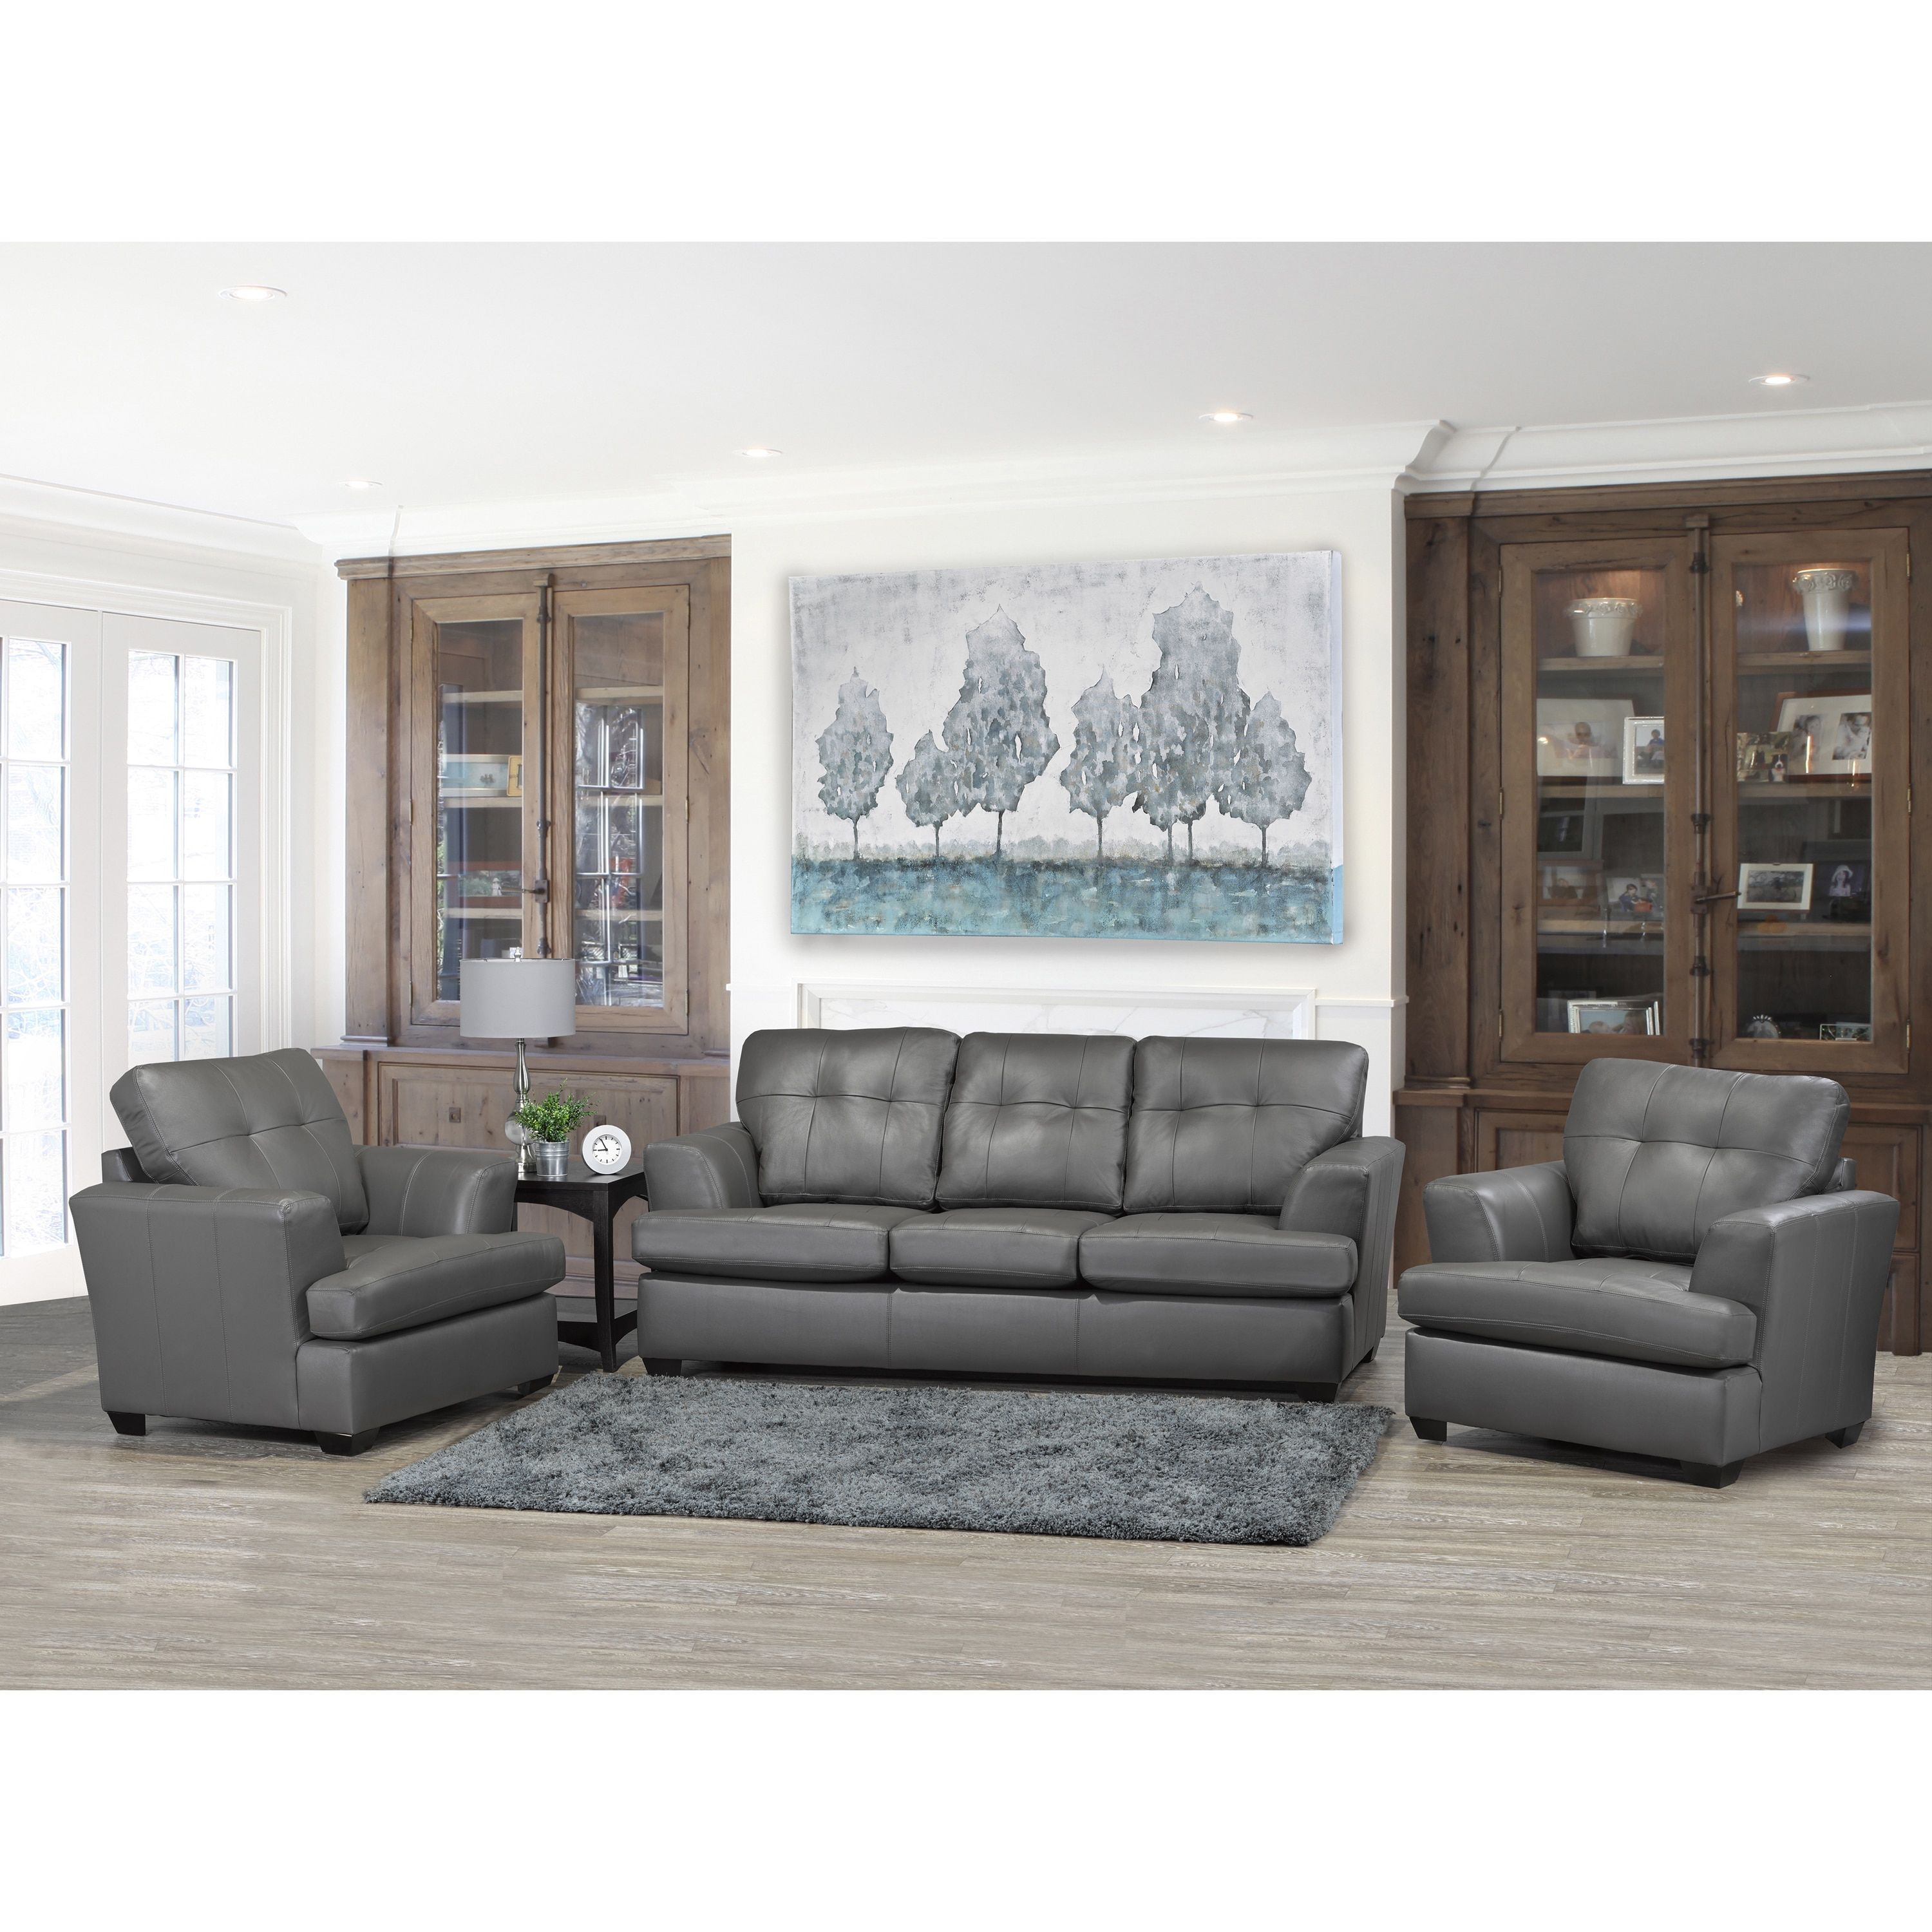 Overstock Com Online Shopping Bedding Furniture Electronics Jewelry Clothing More Top Grain Leather Sofa Leather Living Room Furniture Living Room Leather #set #of #two #chairs #for #living #room